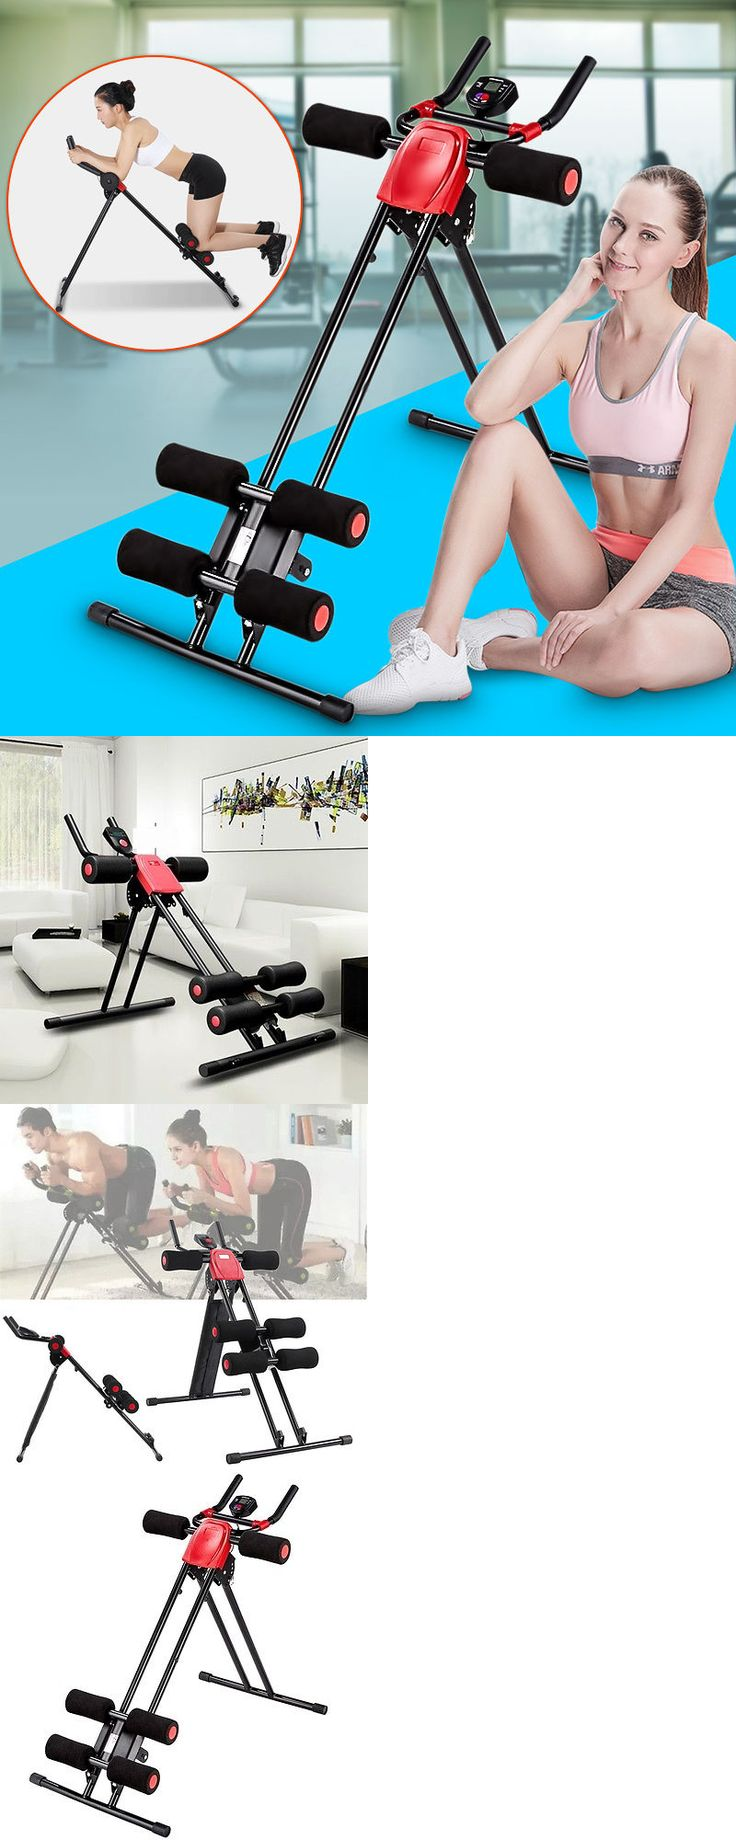 Abdominal Exercisers 15274: Finether Ab Cruncher Abdominal Trainer Glider Machine Fitness Exercise Equipment -> BUY IT NOW ONLY: $49.59 on eBay!